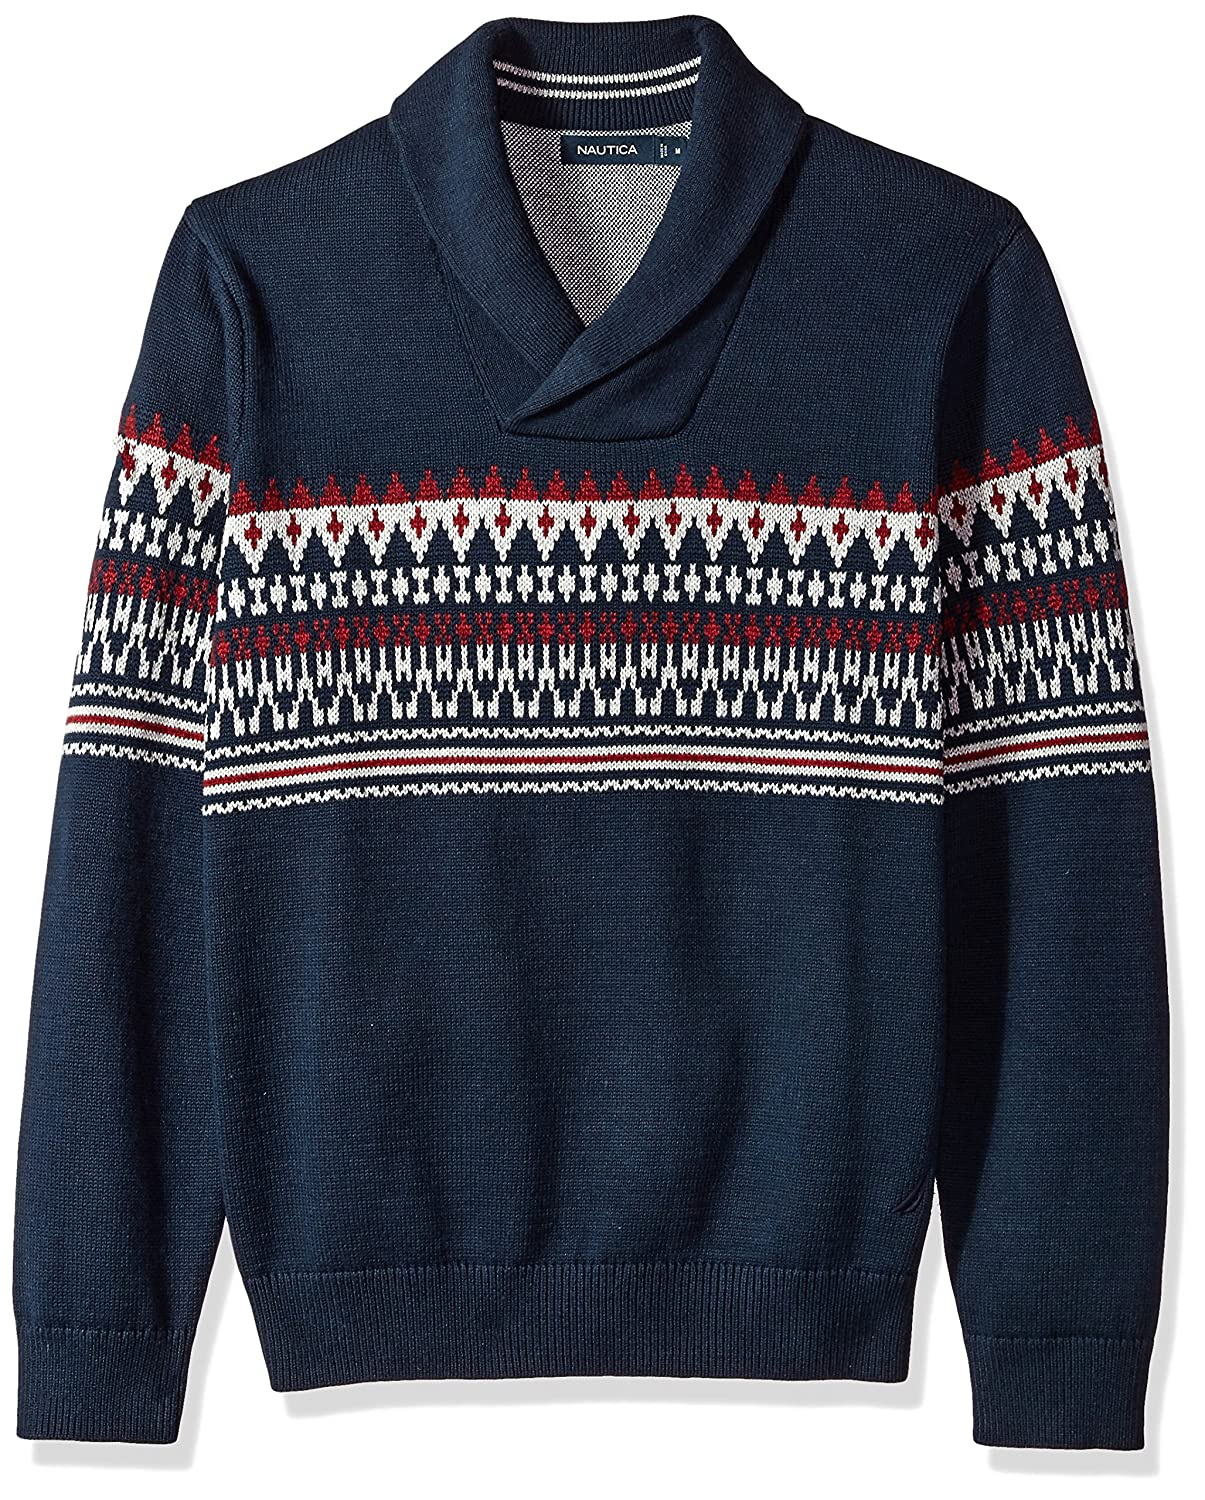 1930s Men's Clothing Nautica Mens Long Sleeve Crew Neck Fairisle Sweater $89.50 AT vintagedancer.com